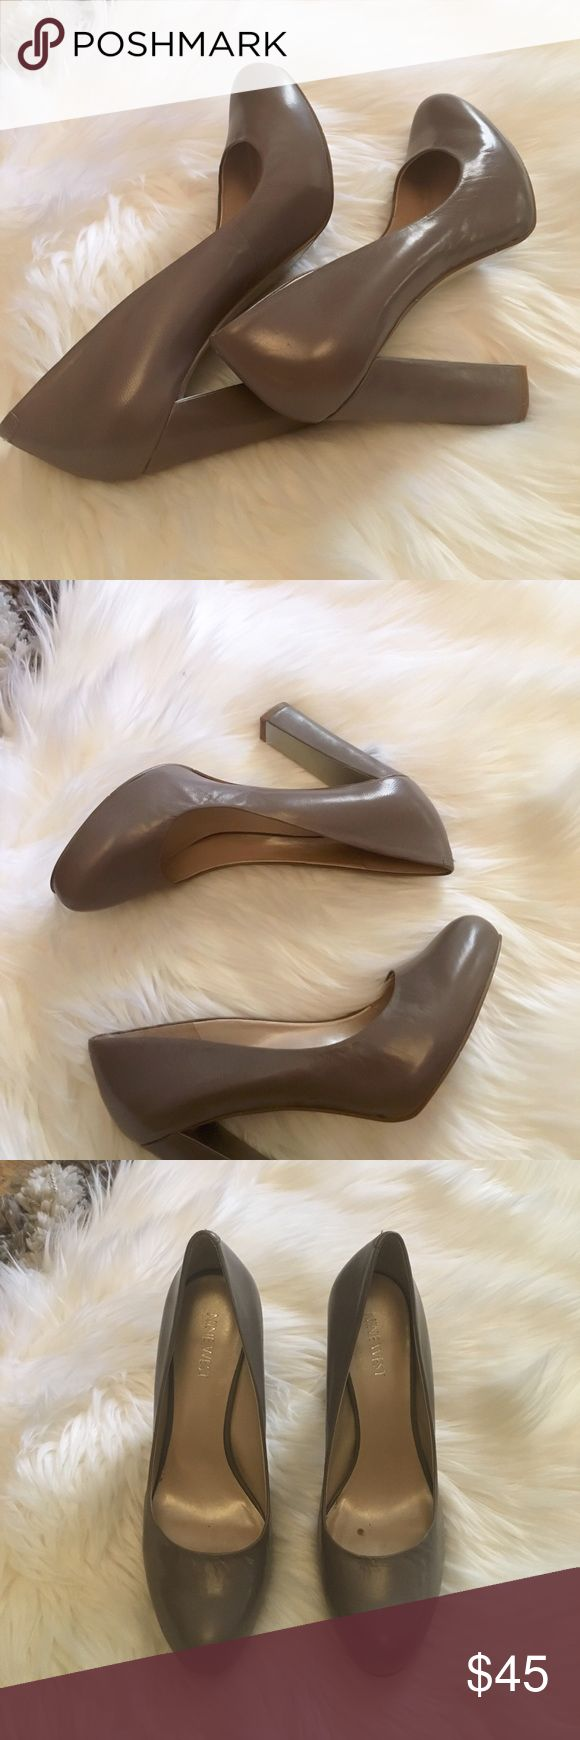 Nine West pumps Beautiful gray Nine West heels. Has a silver metal on the inner heels Nine West Shoes Heels